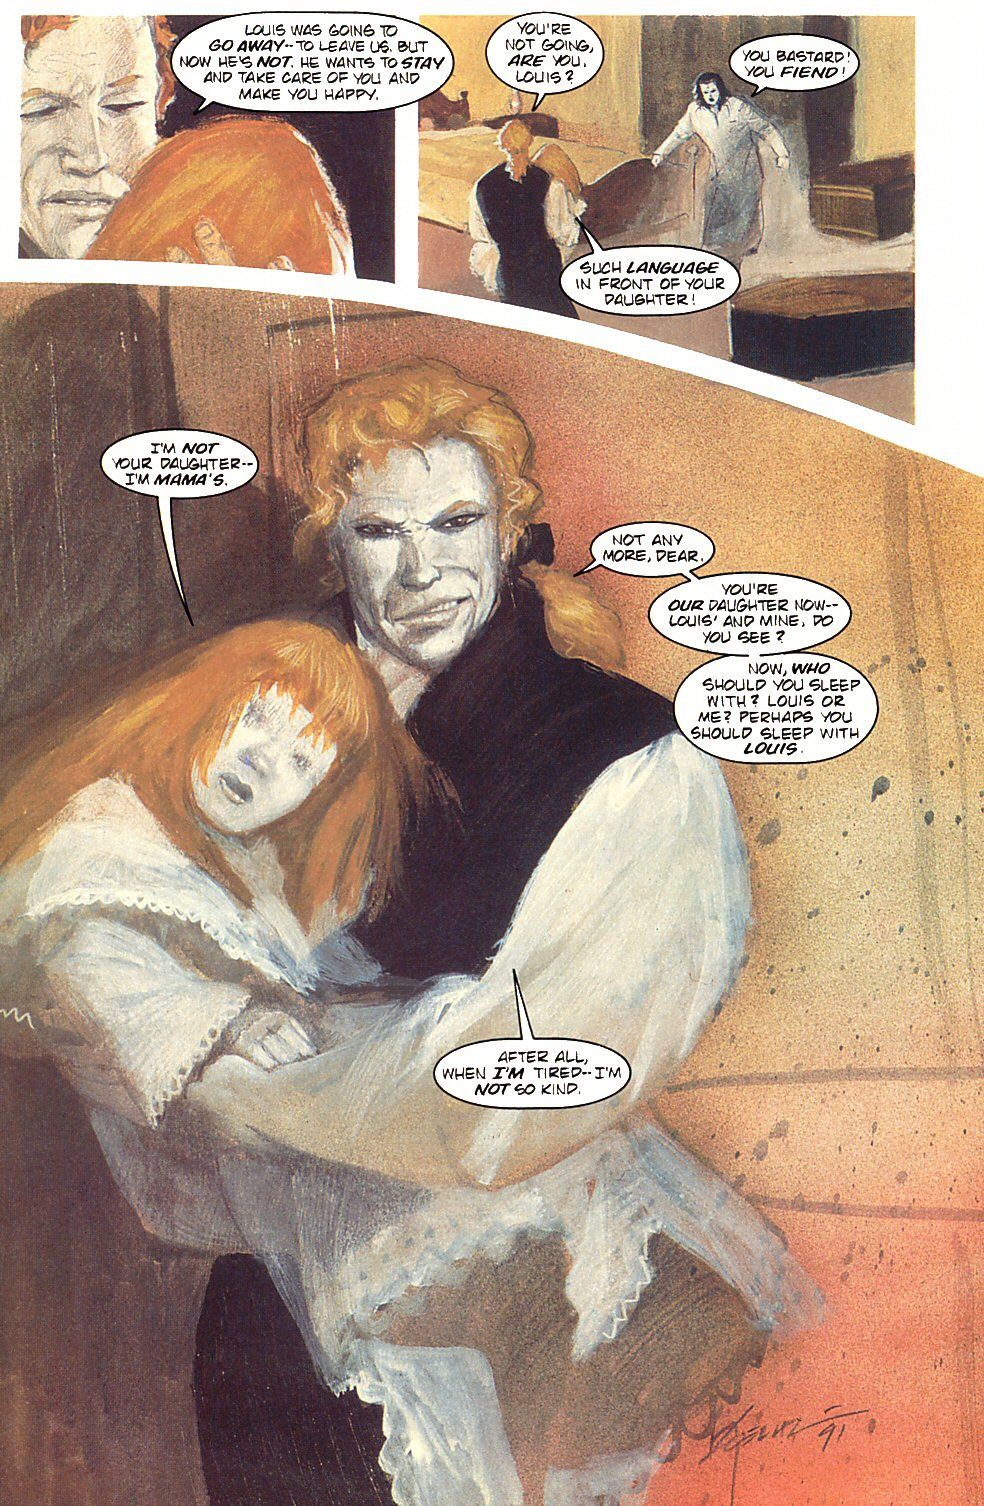 Read online Anne Rice's Interview with the Vampire comic -  Issue #3 - 35